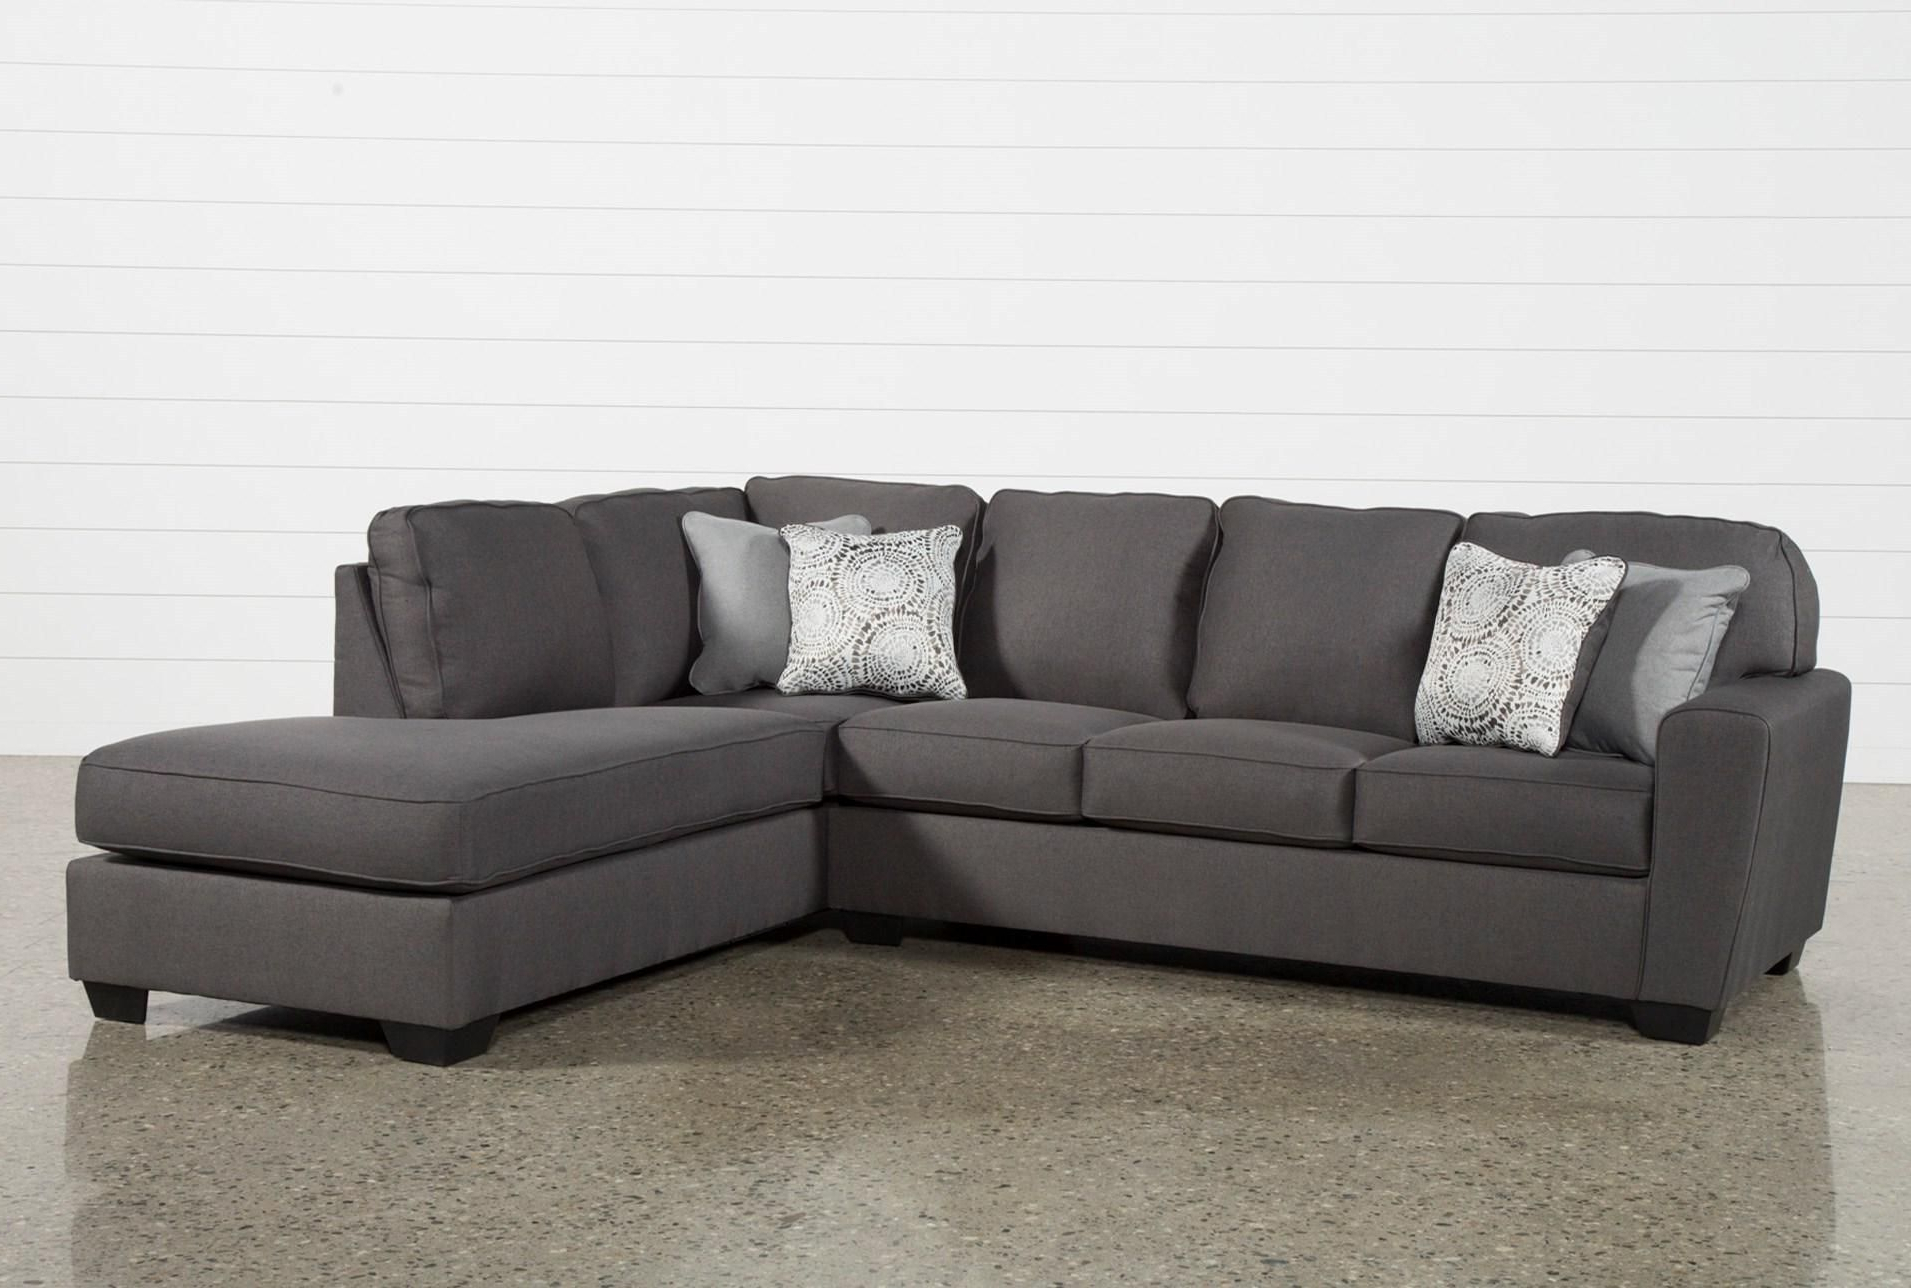 Preferred Mcdade Graphite 2 Piece Sectional W/raf Chaise In  (View 11 of 20)